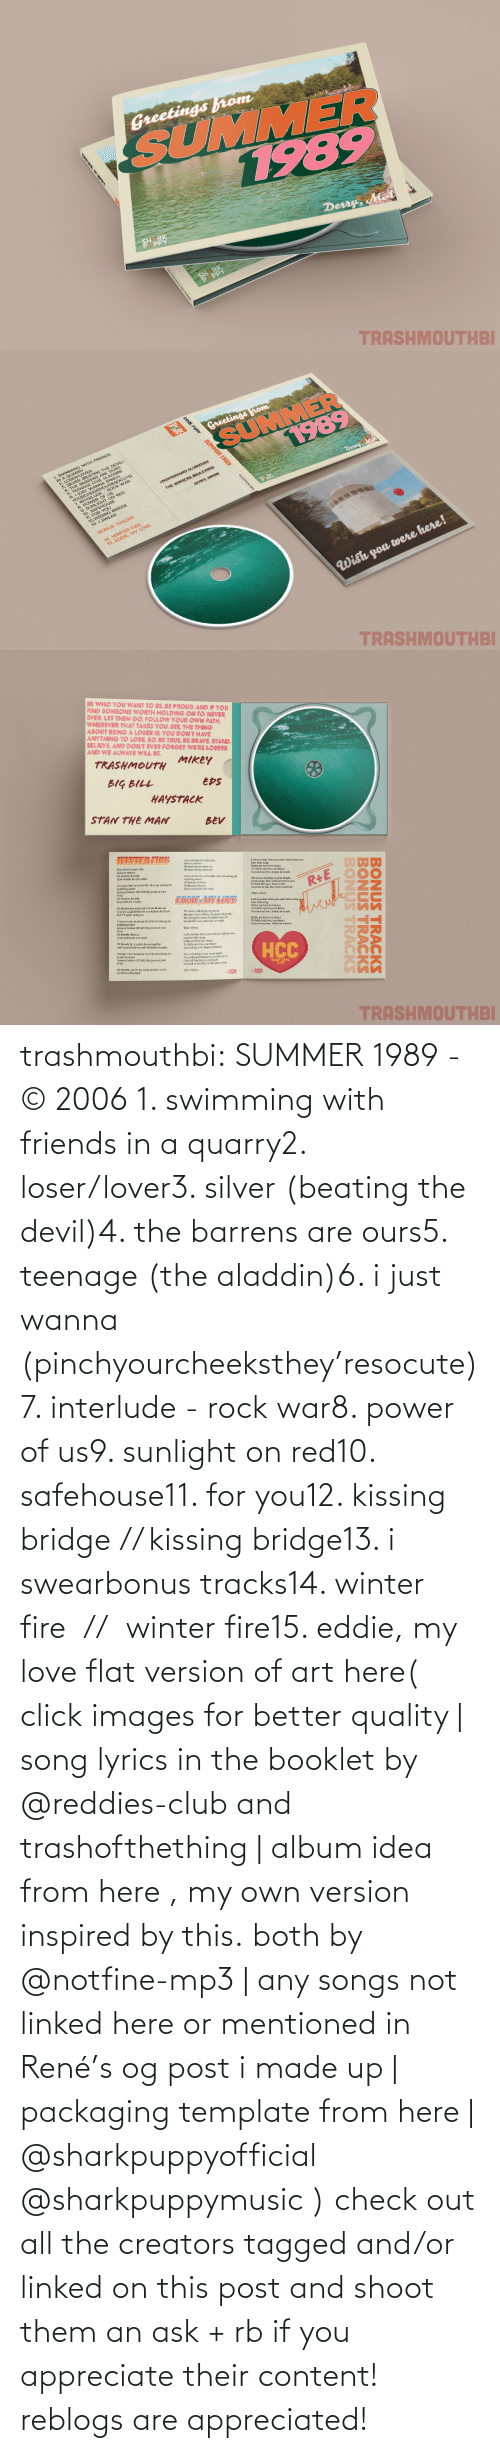 Images: trashmouthbi: SUMMER 1989 - © 2006 1. swimming with friends in a quarry2. loser/lover3. silver (beating the devil)4. the barrens are ours5. teenage (the aladdin)6. i just wanna (pinchyourcheeksthey'resocute)7. interlude - rock war8. power of us9. sunlight on red10. safehouse11. for you12. kissing bridge // kissing bridge13. i swearbonus tracks14. winter fire  //  winter fire15. eddie, my love flat version of art here( click images for better quality | song lyrics in the booklet by @reddies-club​ and trashofthething | album idea from here , my own version inspired by this. both by @notfine-mp3​ | any songs not linked here or mentioned in René's og post i made up | packaging template from here | @sharkpuppyofficial​ @sharkpuppymusic​ ) check out all the creators tagged and/or linked on this post and shoot them an ask + rb if you appreciate their content! reblogs are appreciated!